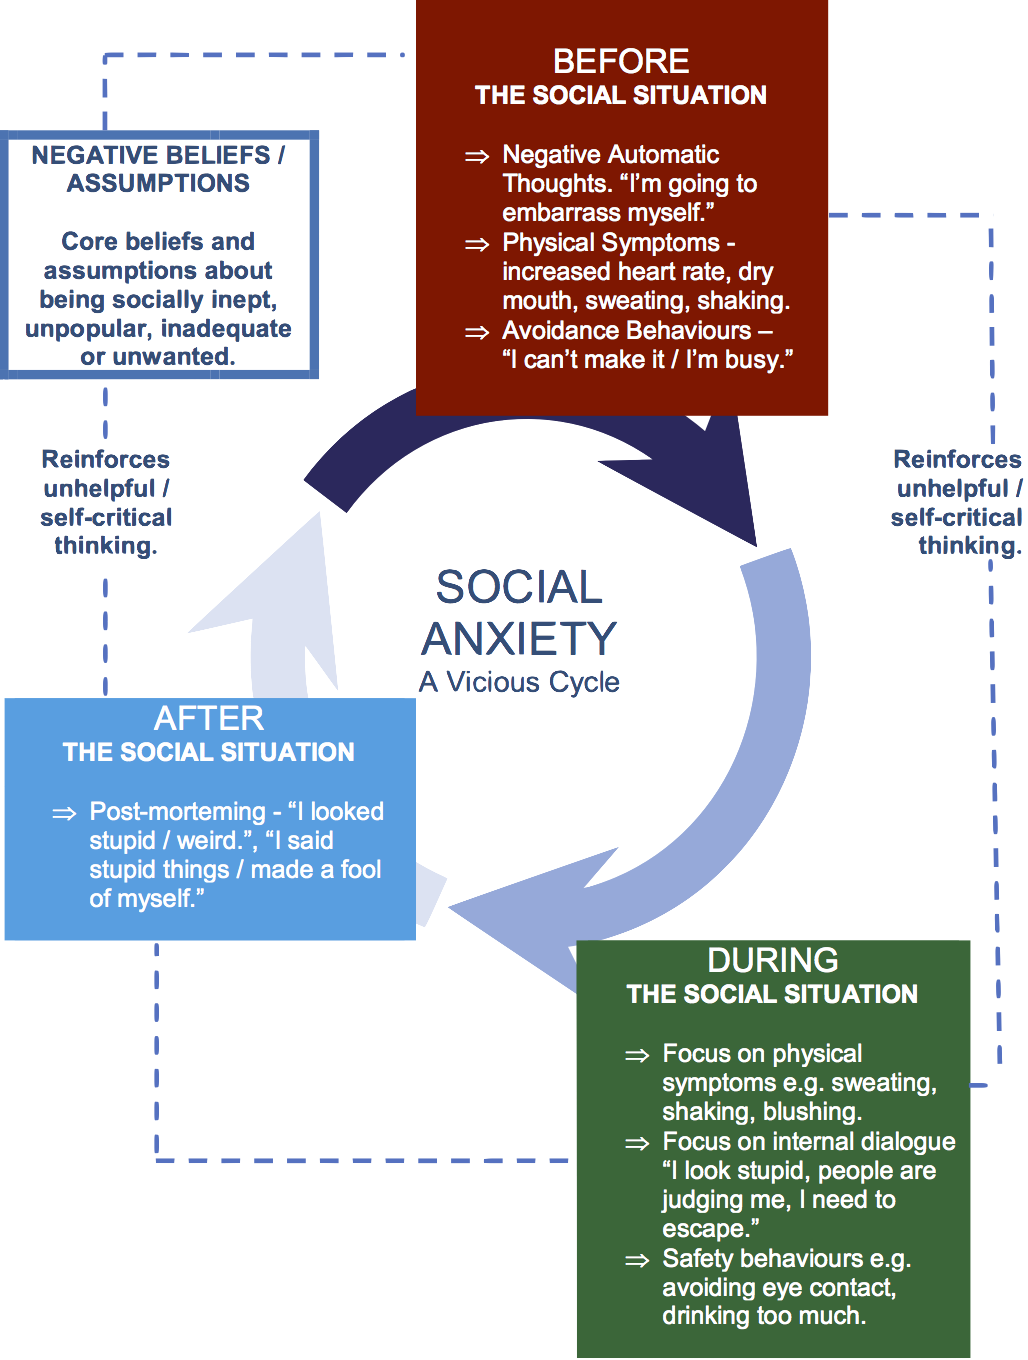 SOCIAL ANXIETY A VICIOUS CYCLE THINK CBT V 18.06.18